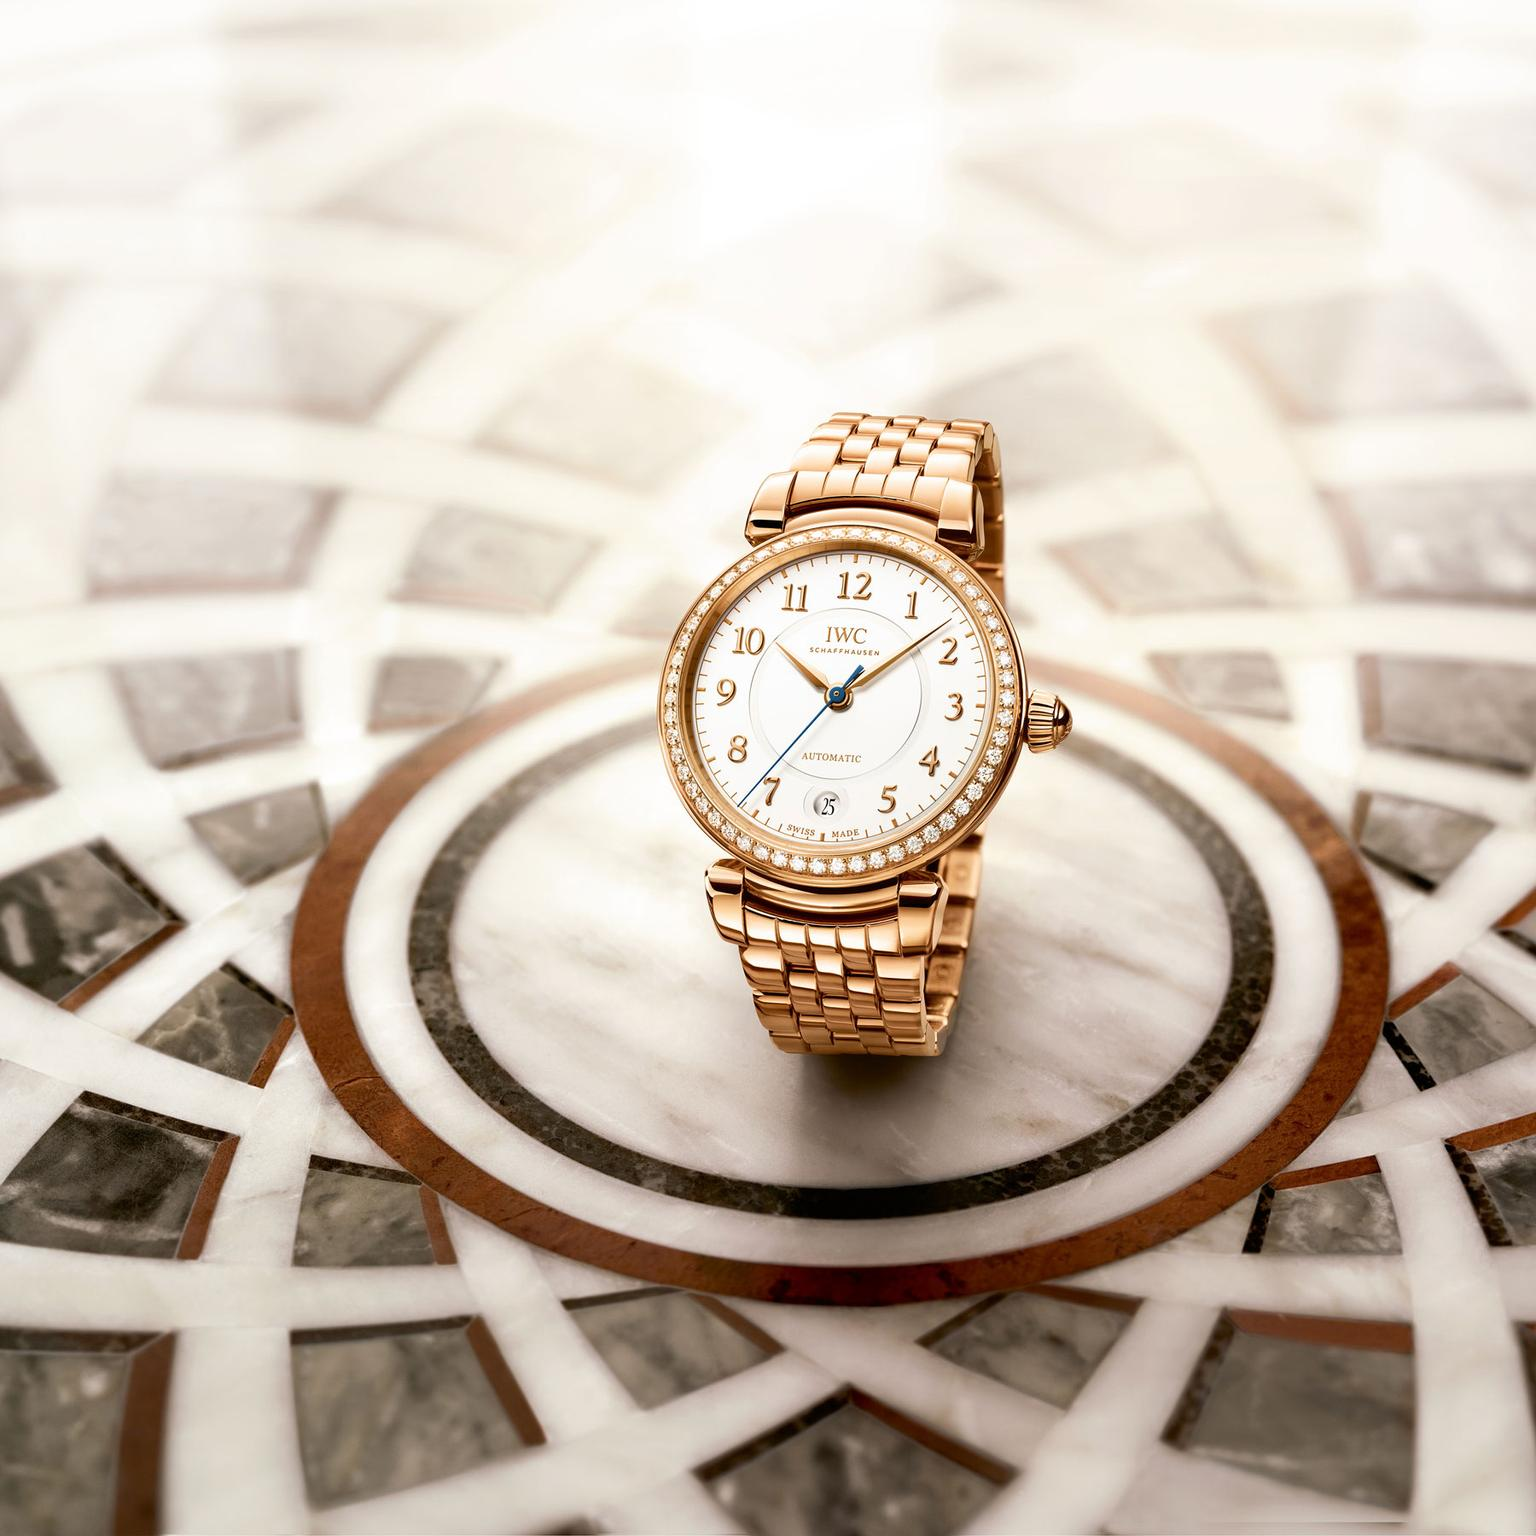 IWC Da Vinci automatic red gold watch for women with diamonds on the flower of life motif